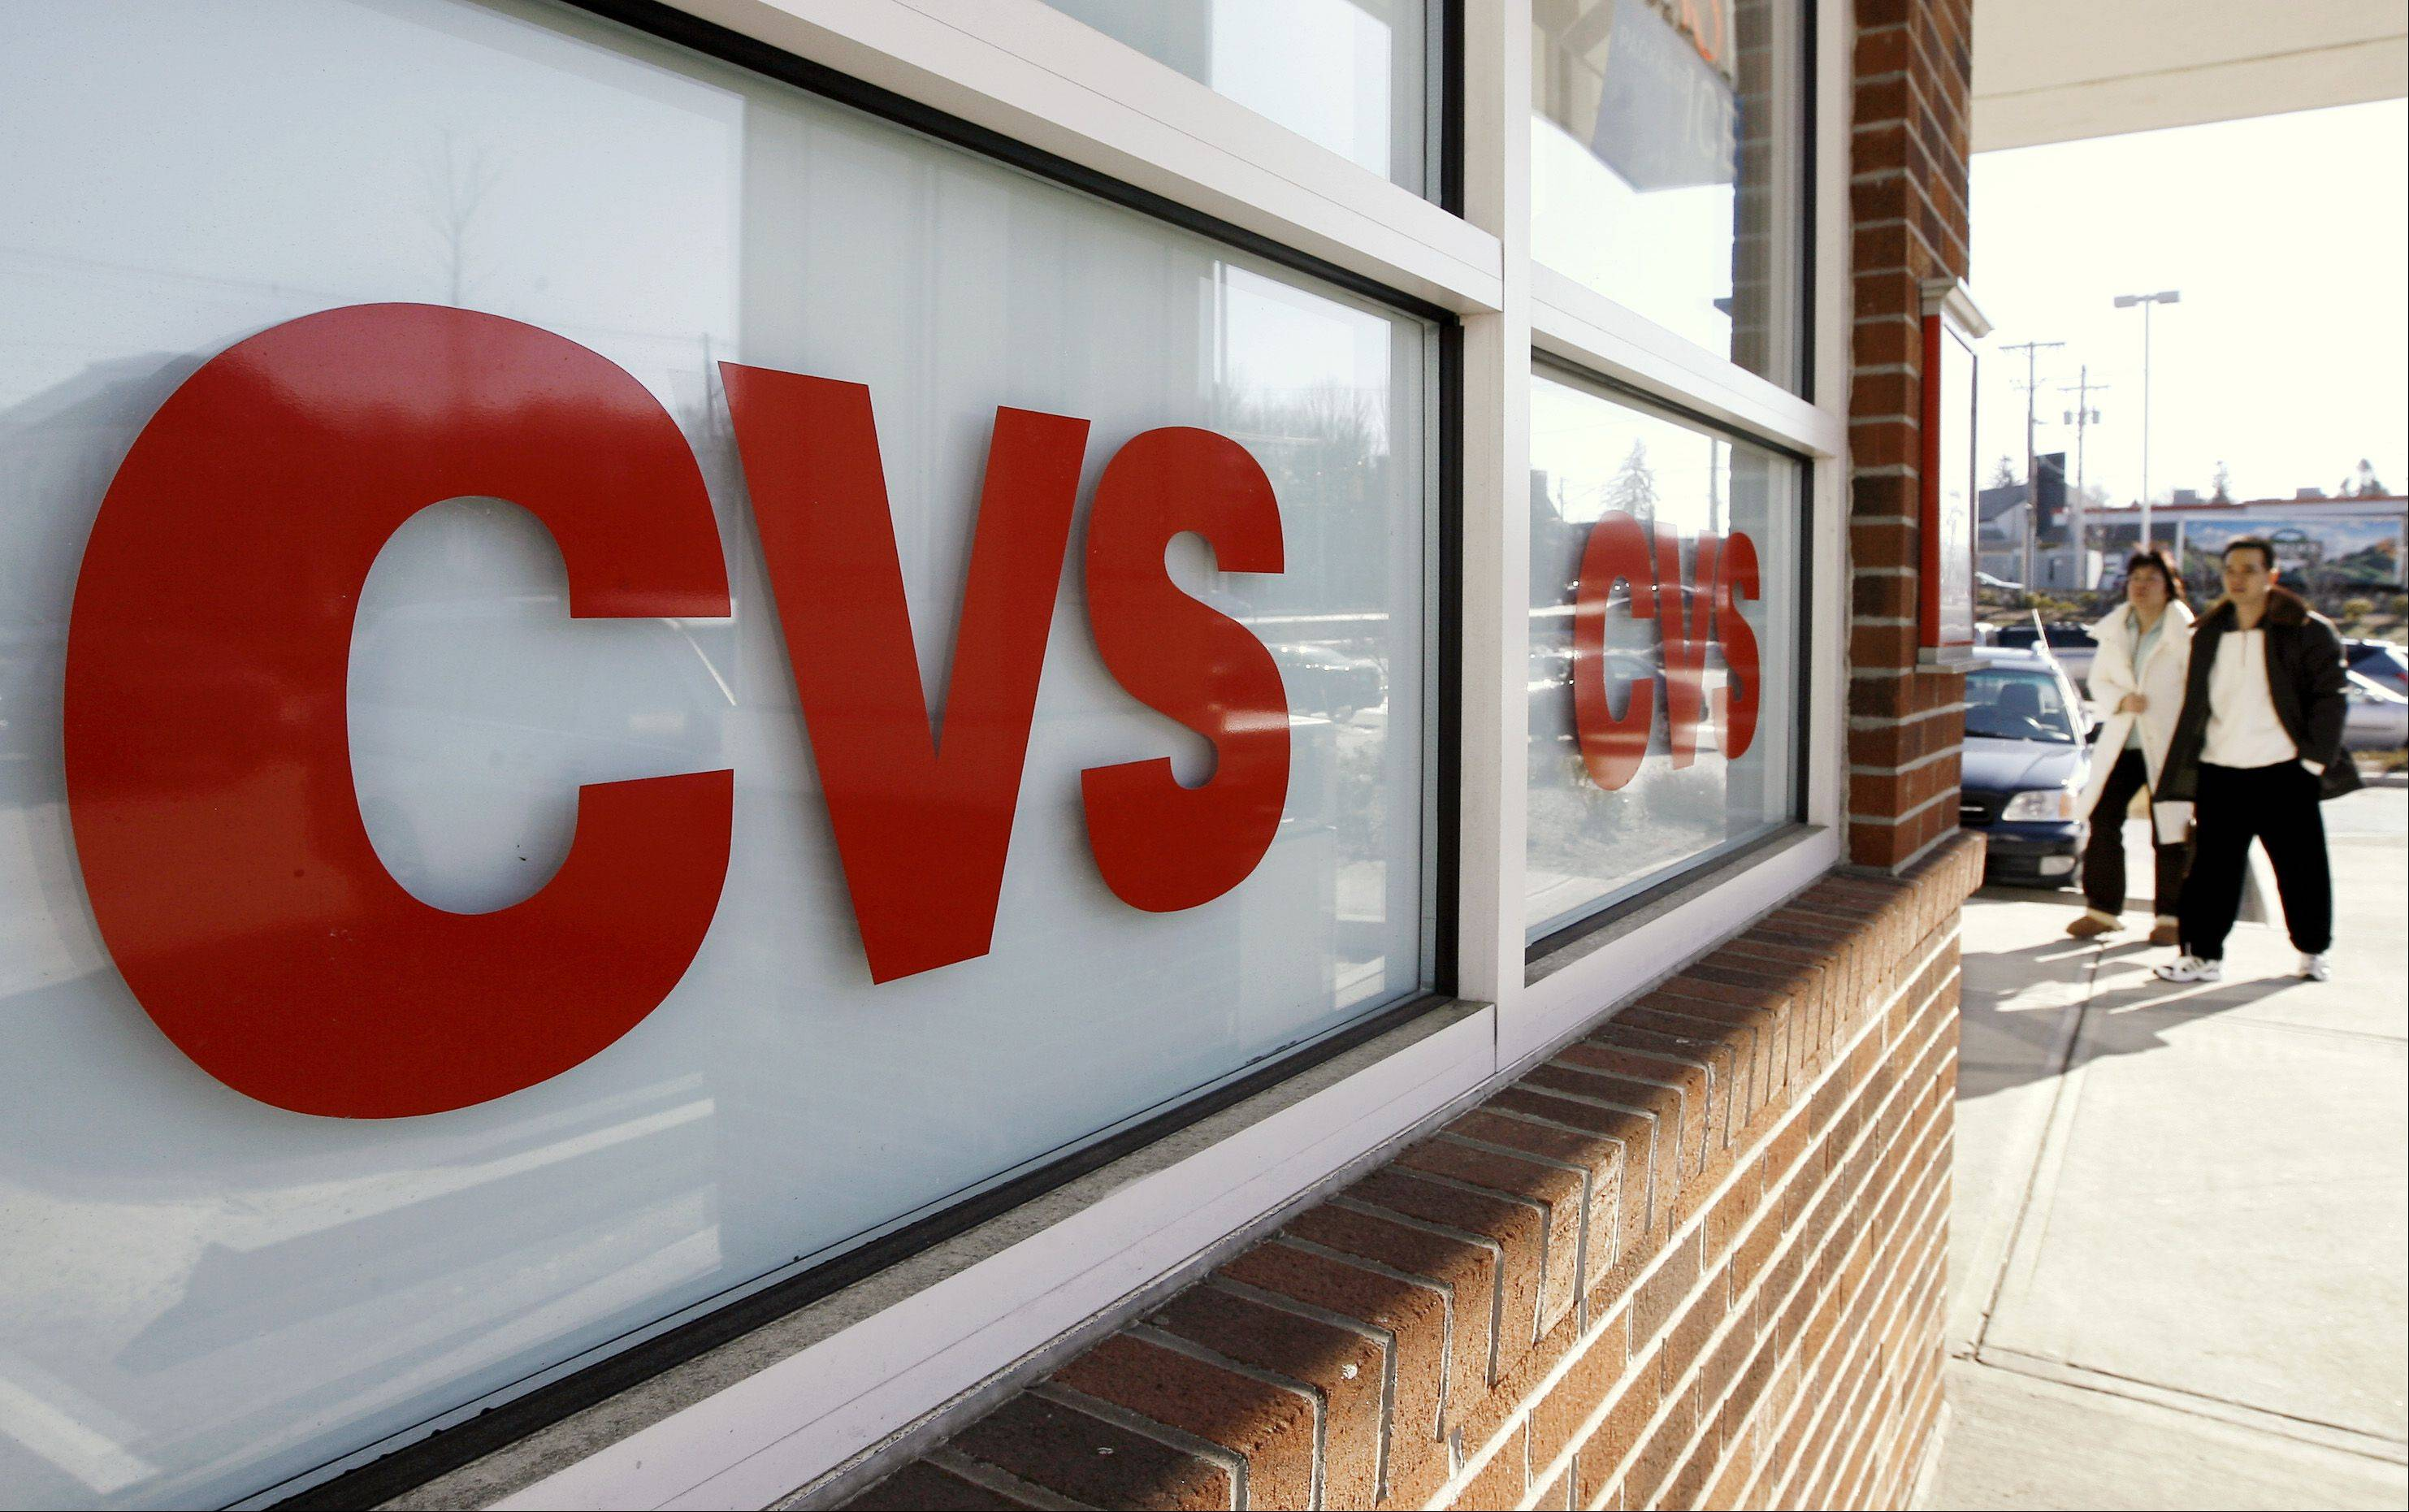 CVS Caremark is kicking the habit of selling tobacco products at its more than 7,600 drugstores nationwide as it focuses more on providing health care.